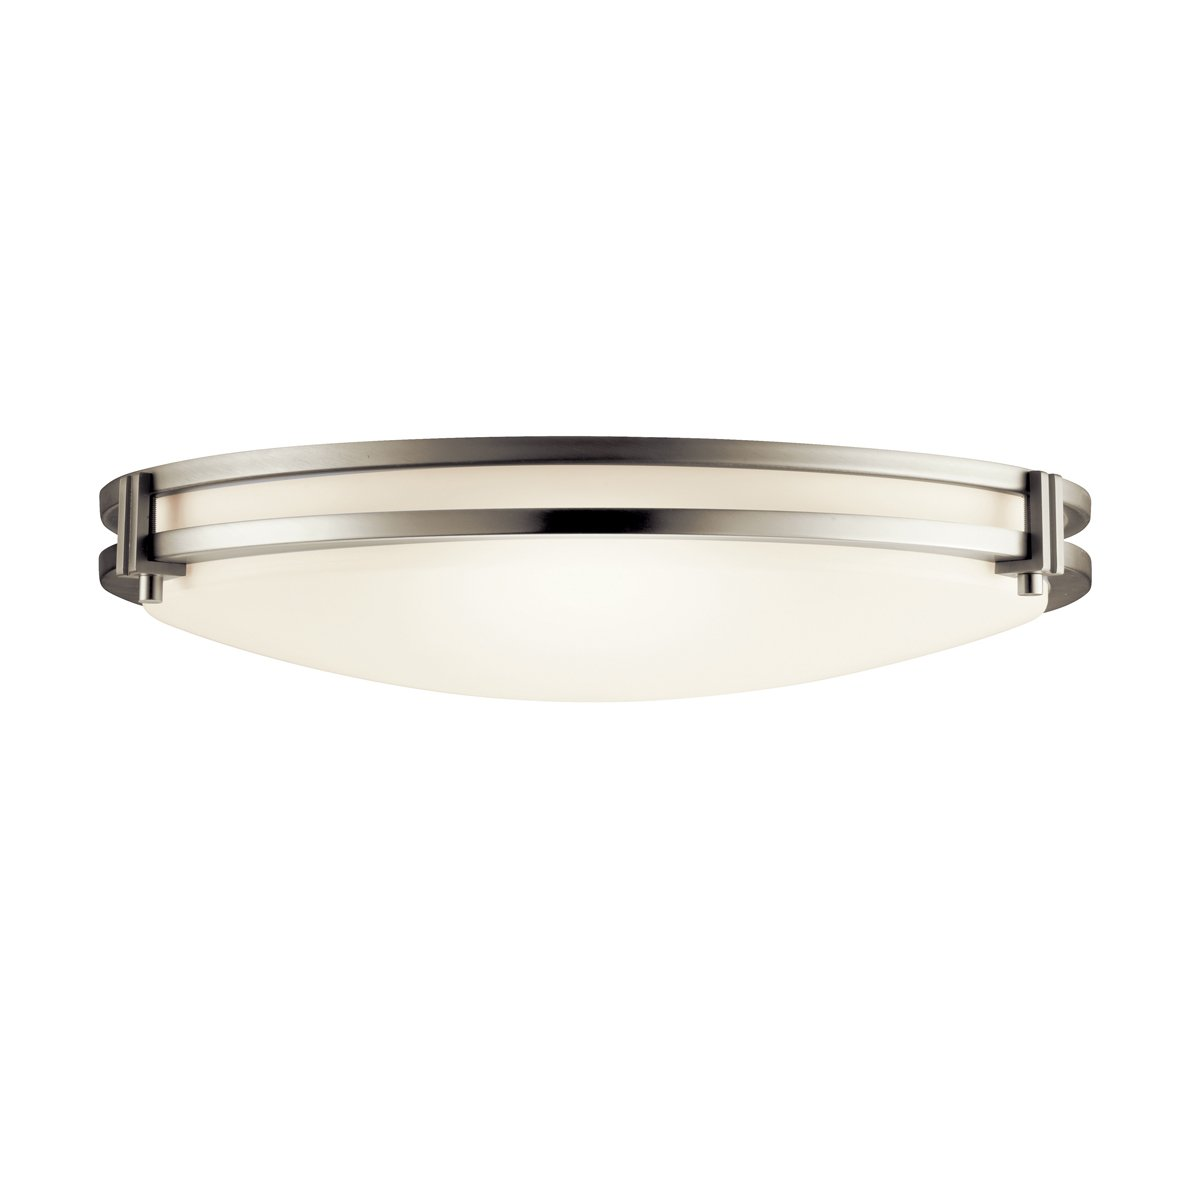 Kichler 10827ni two light flush mount semi flush mount ceiling kichler 10827ni two light flush mount semi flush mount ceiling light fixtures amazon arubaitofo Image collections